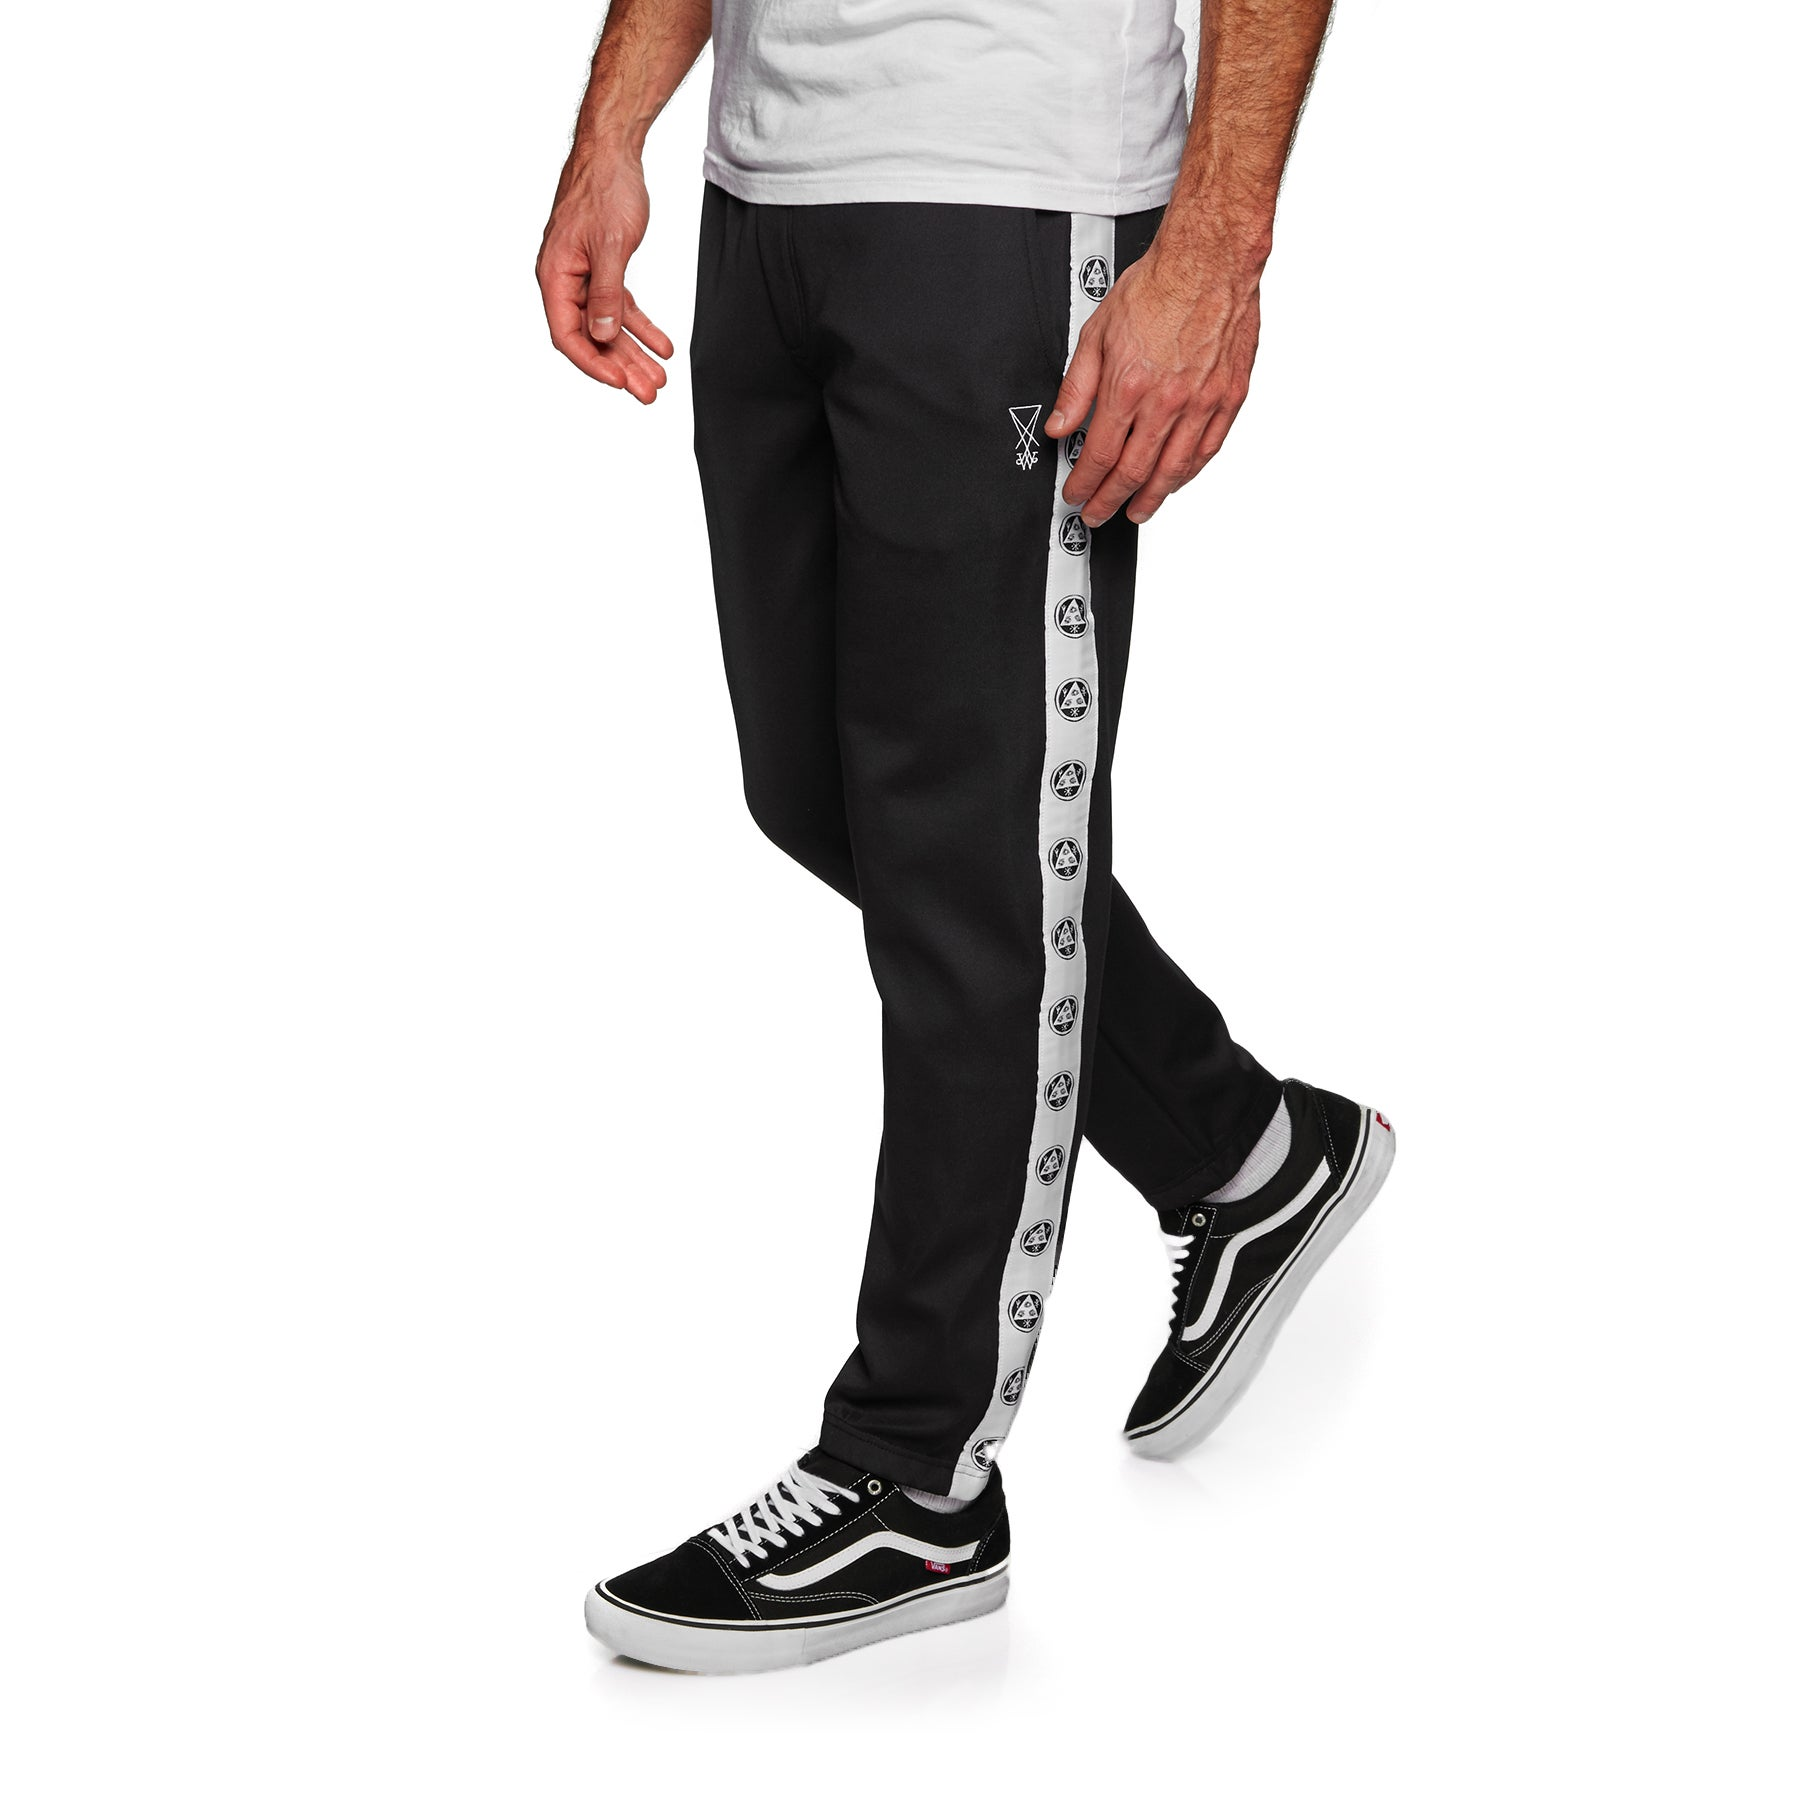 Welcome Talisman Track Jogging Pants - Black White